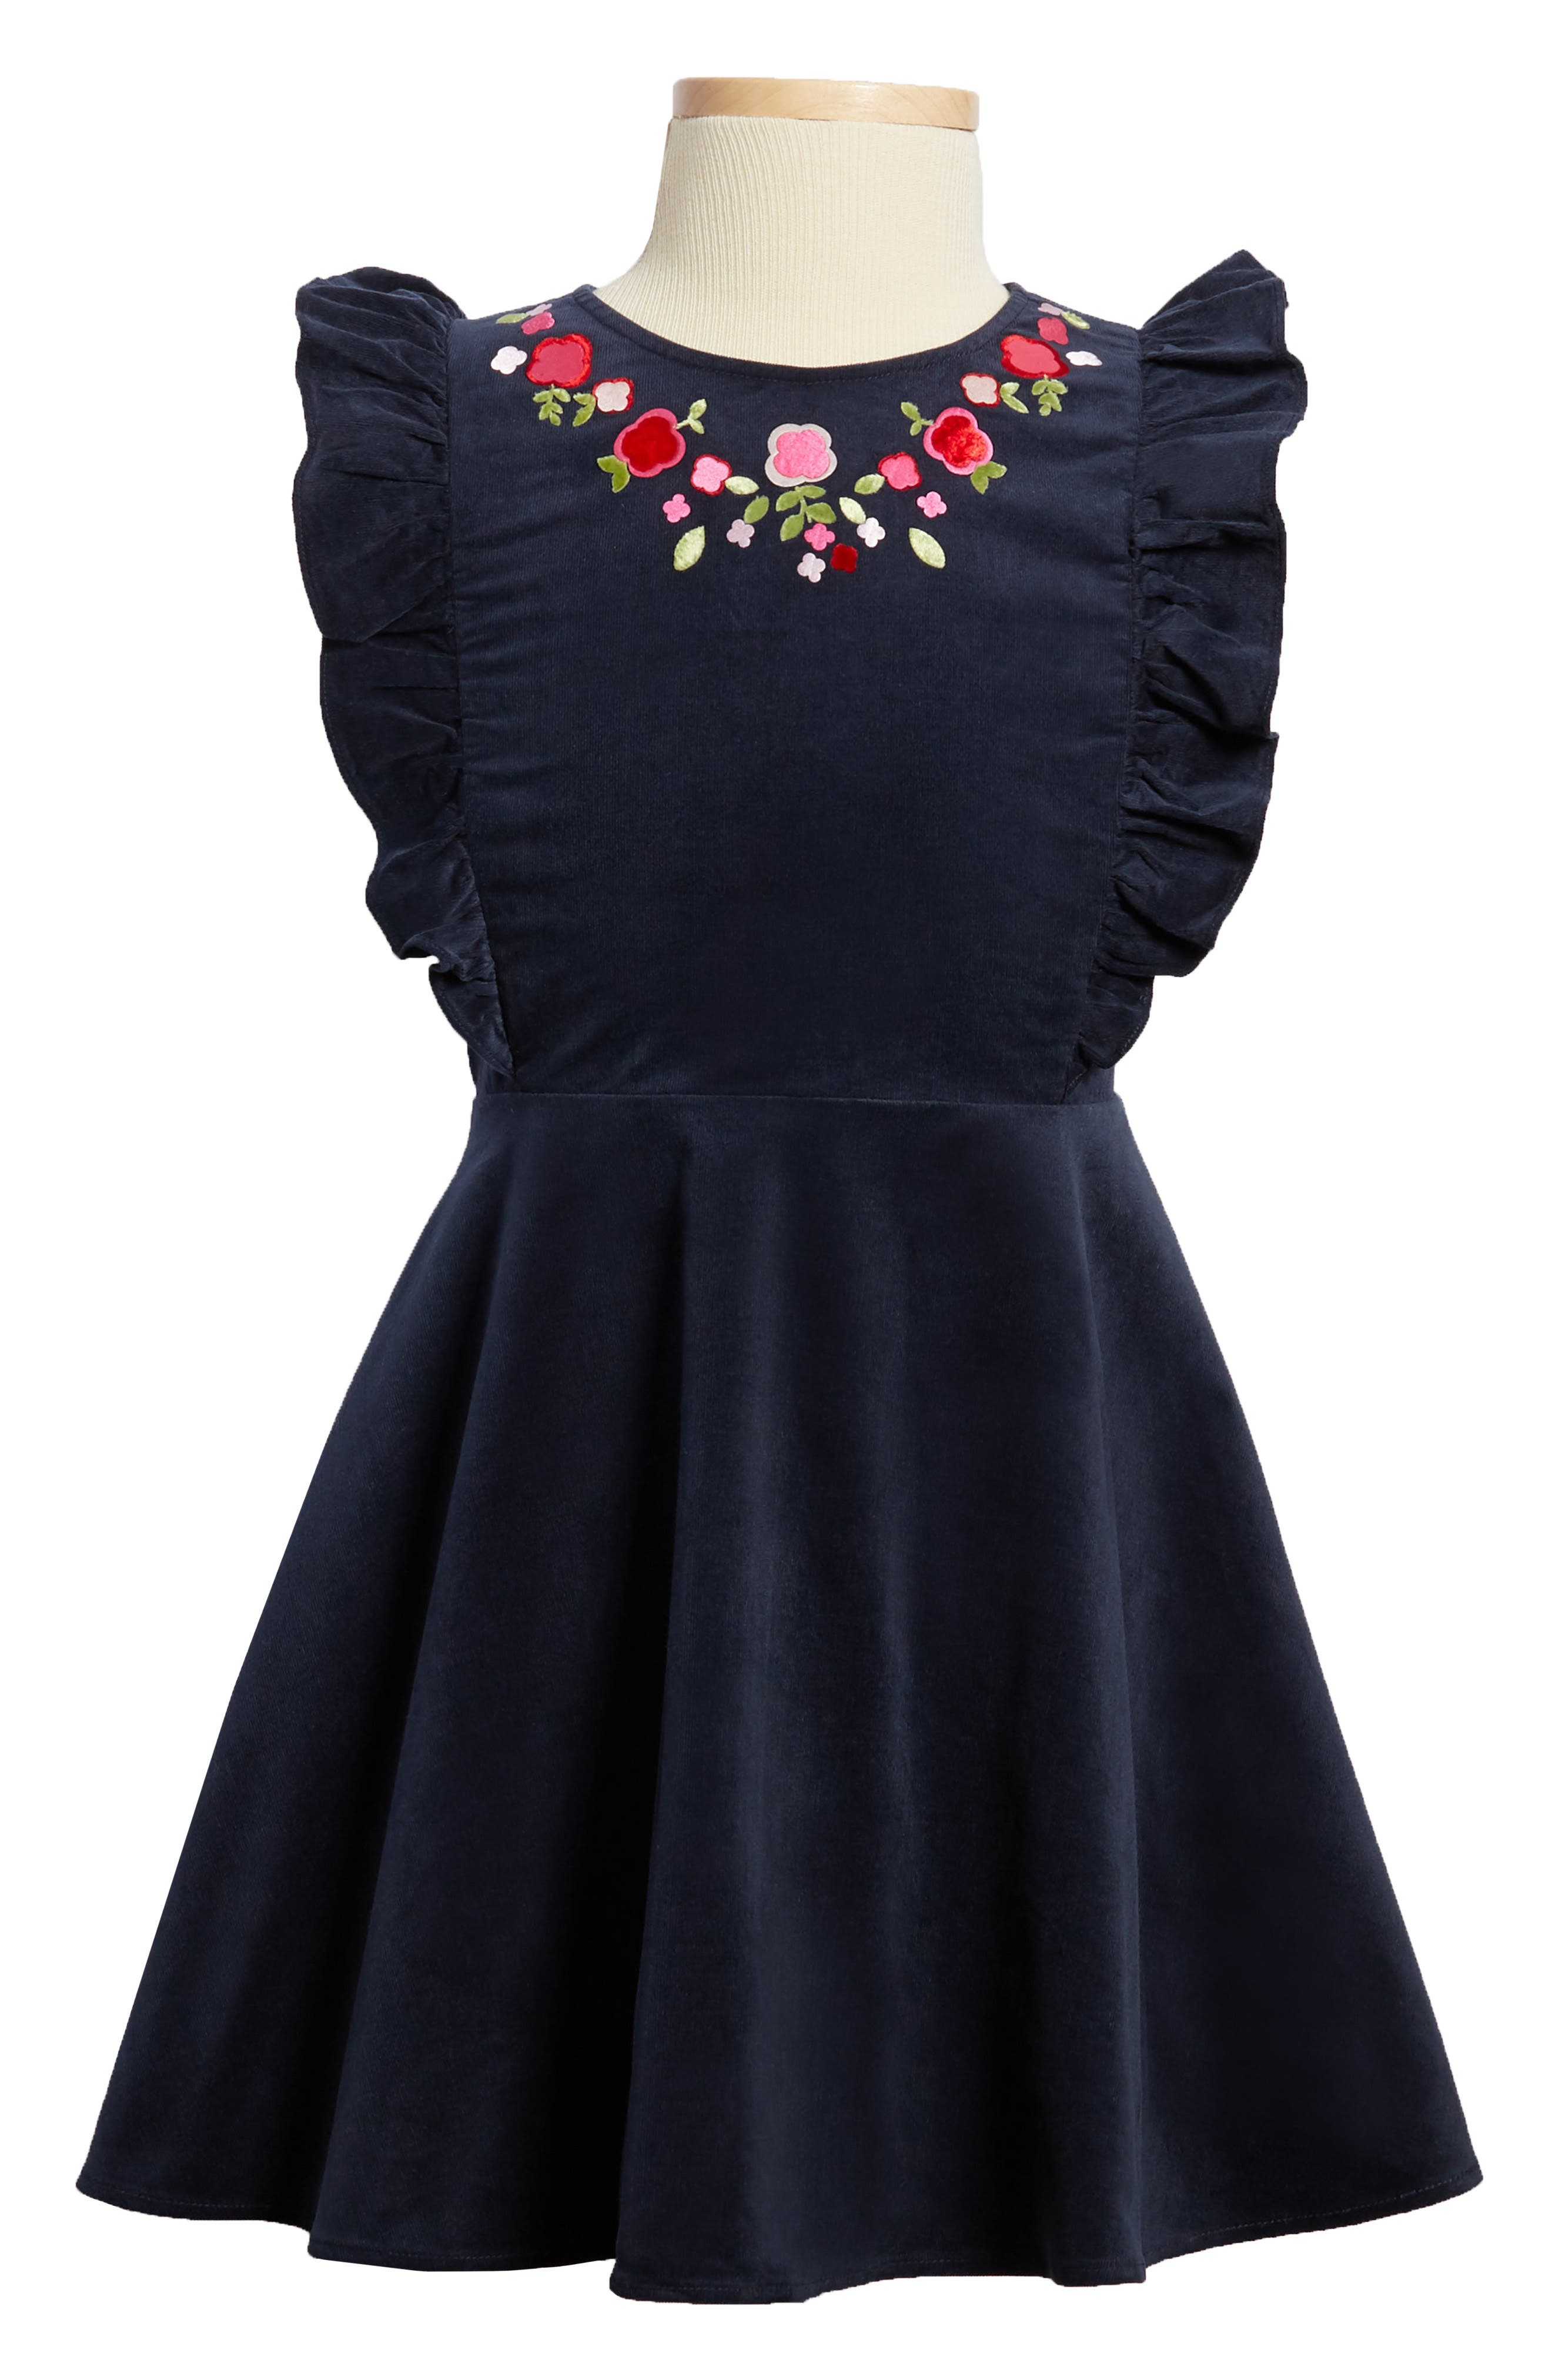 Floral Embroidered Corduroy Dress,                             Main thumbnail 1, color,                             419